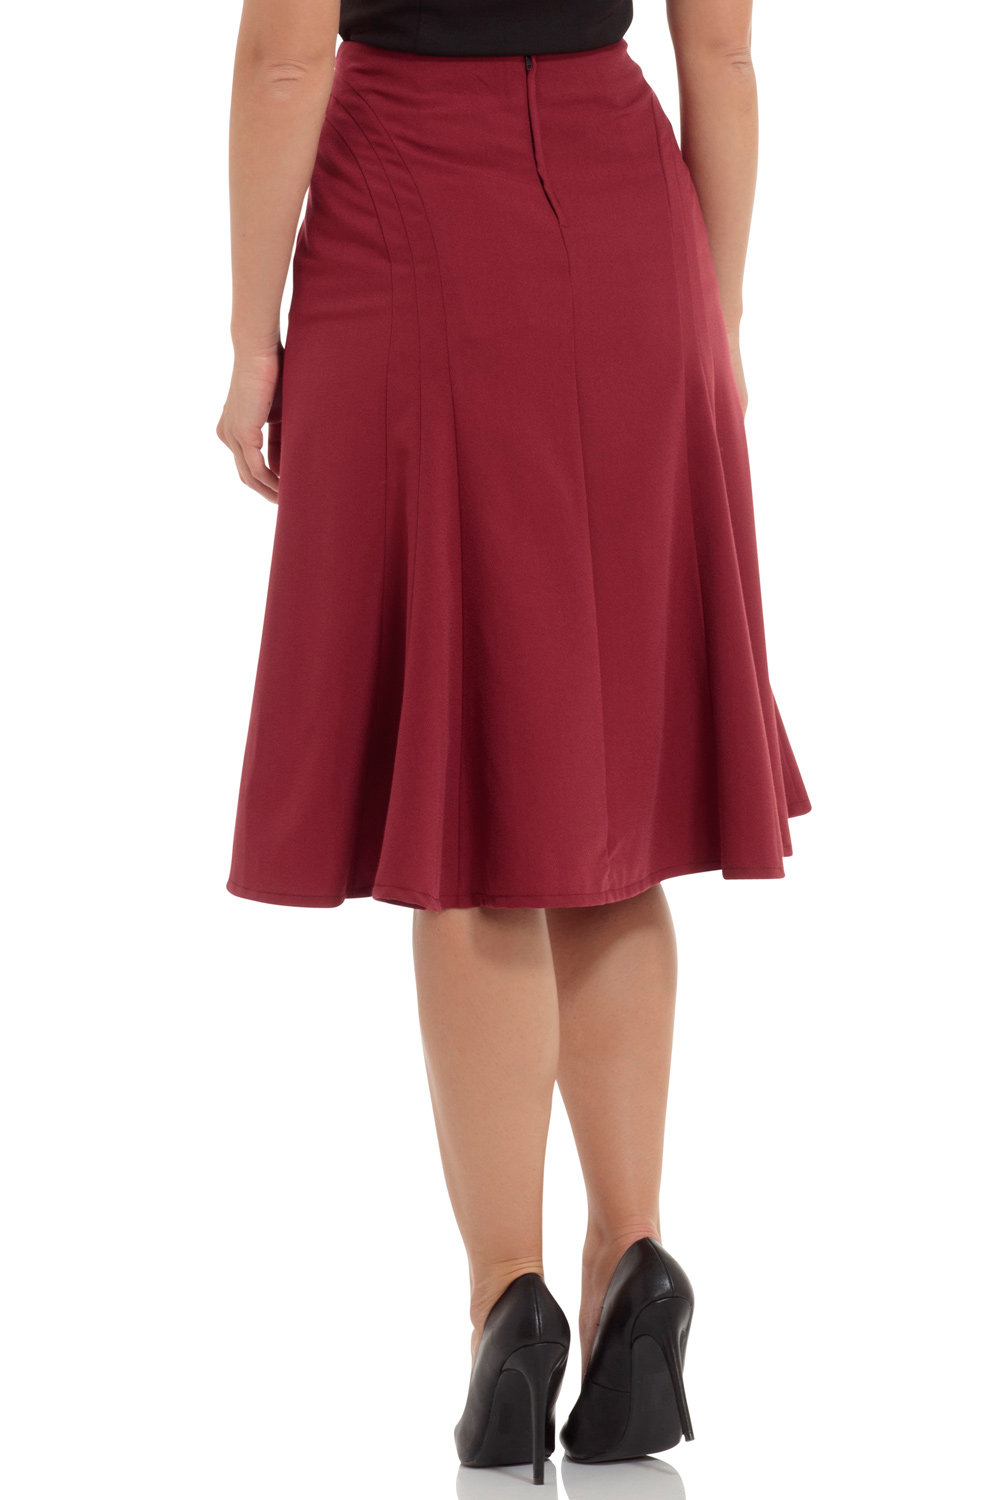 Amy Burgundy Bell Shape Skirt